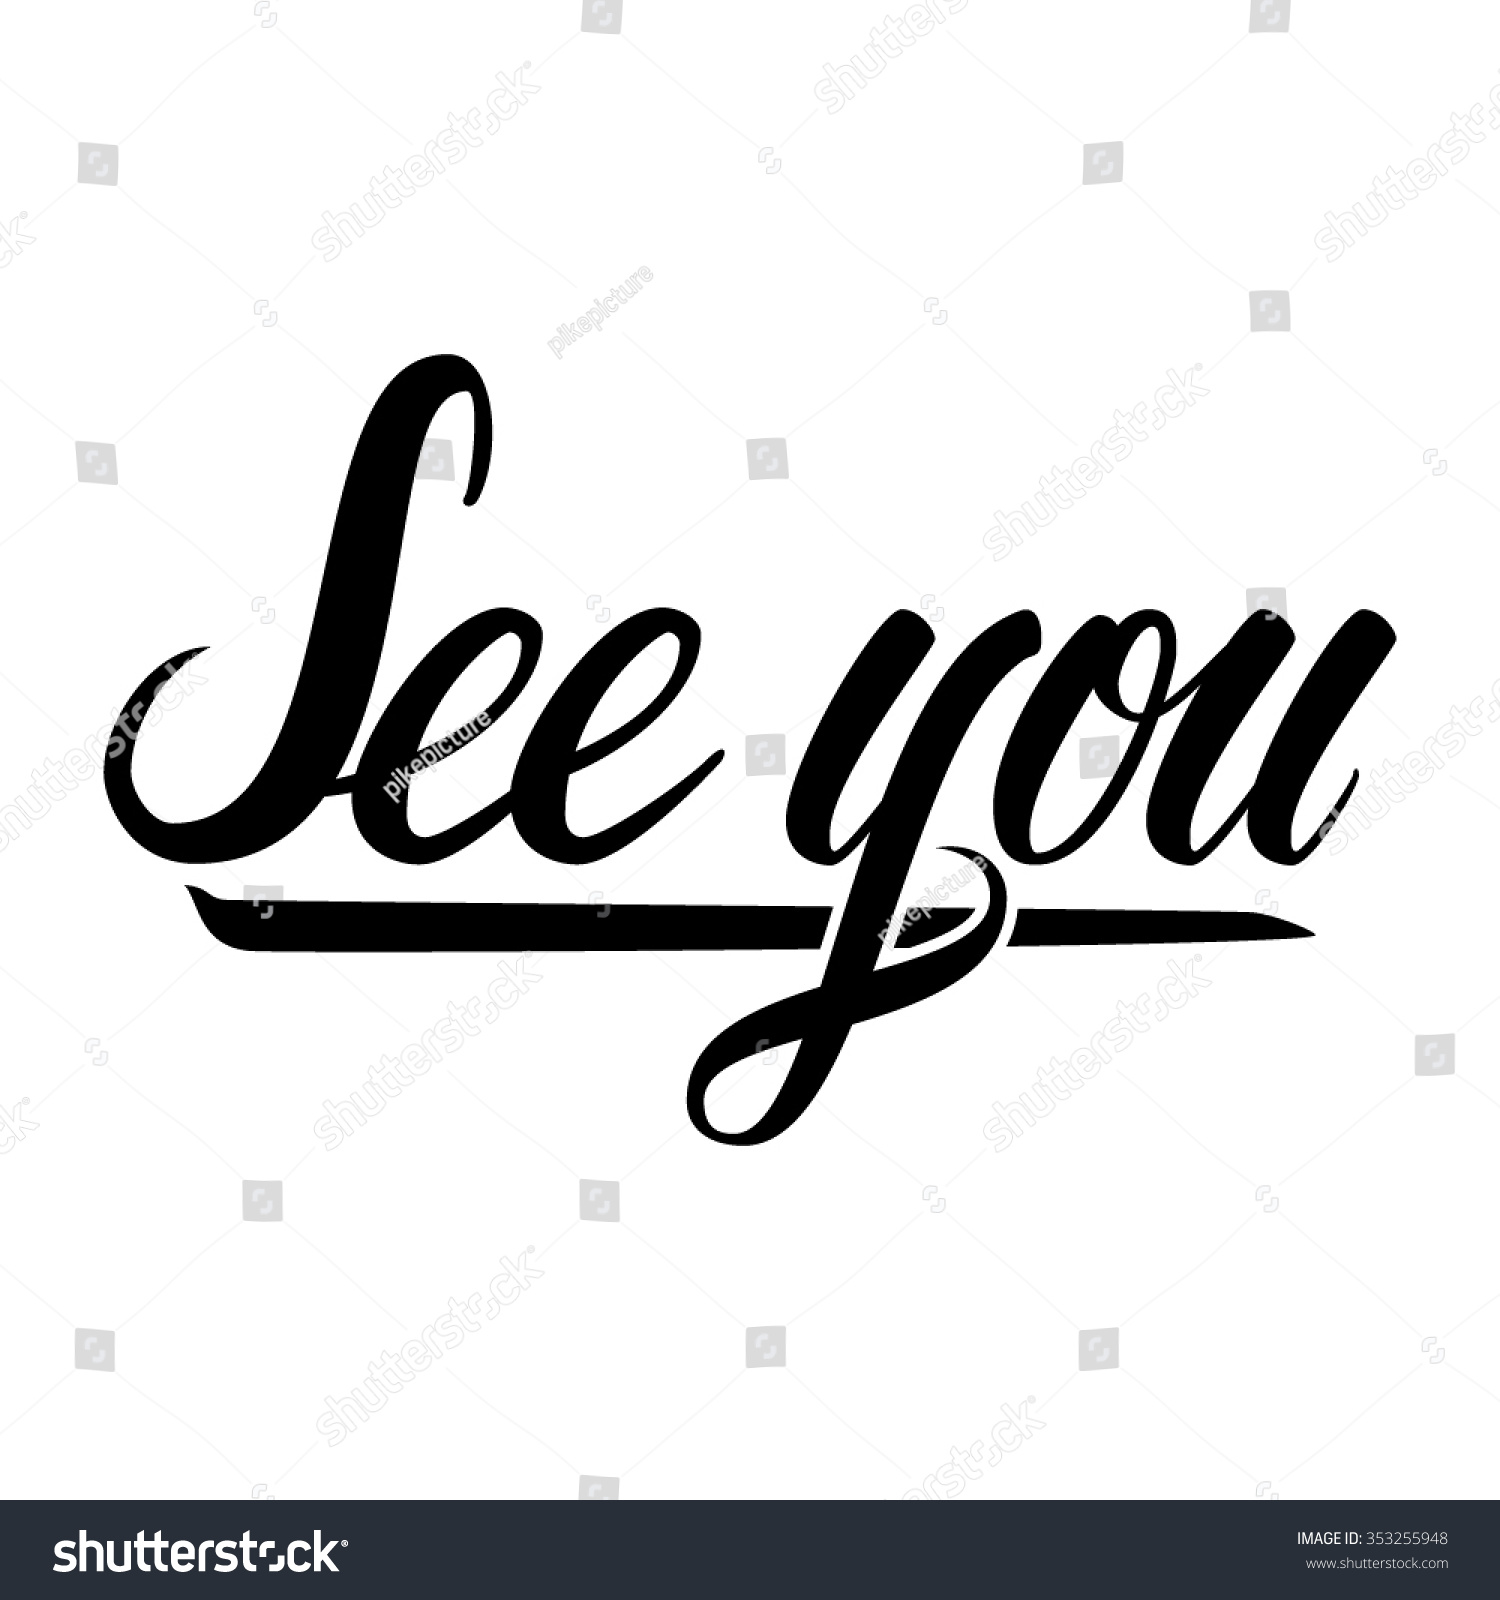 See You Hand Lettering Text Isolated In White Background